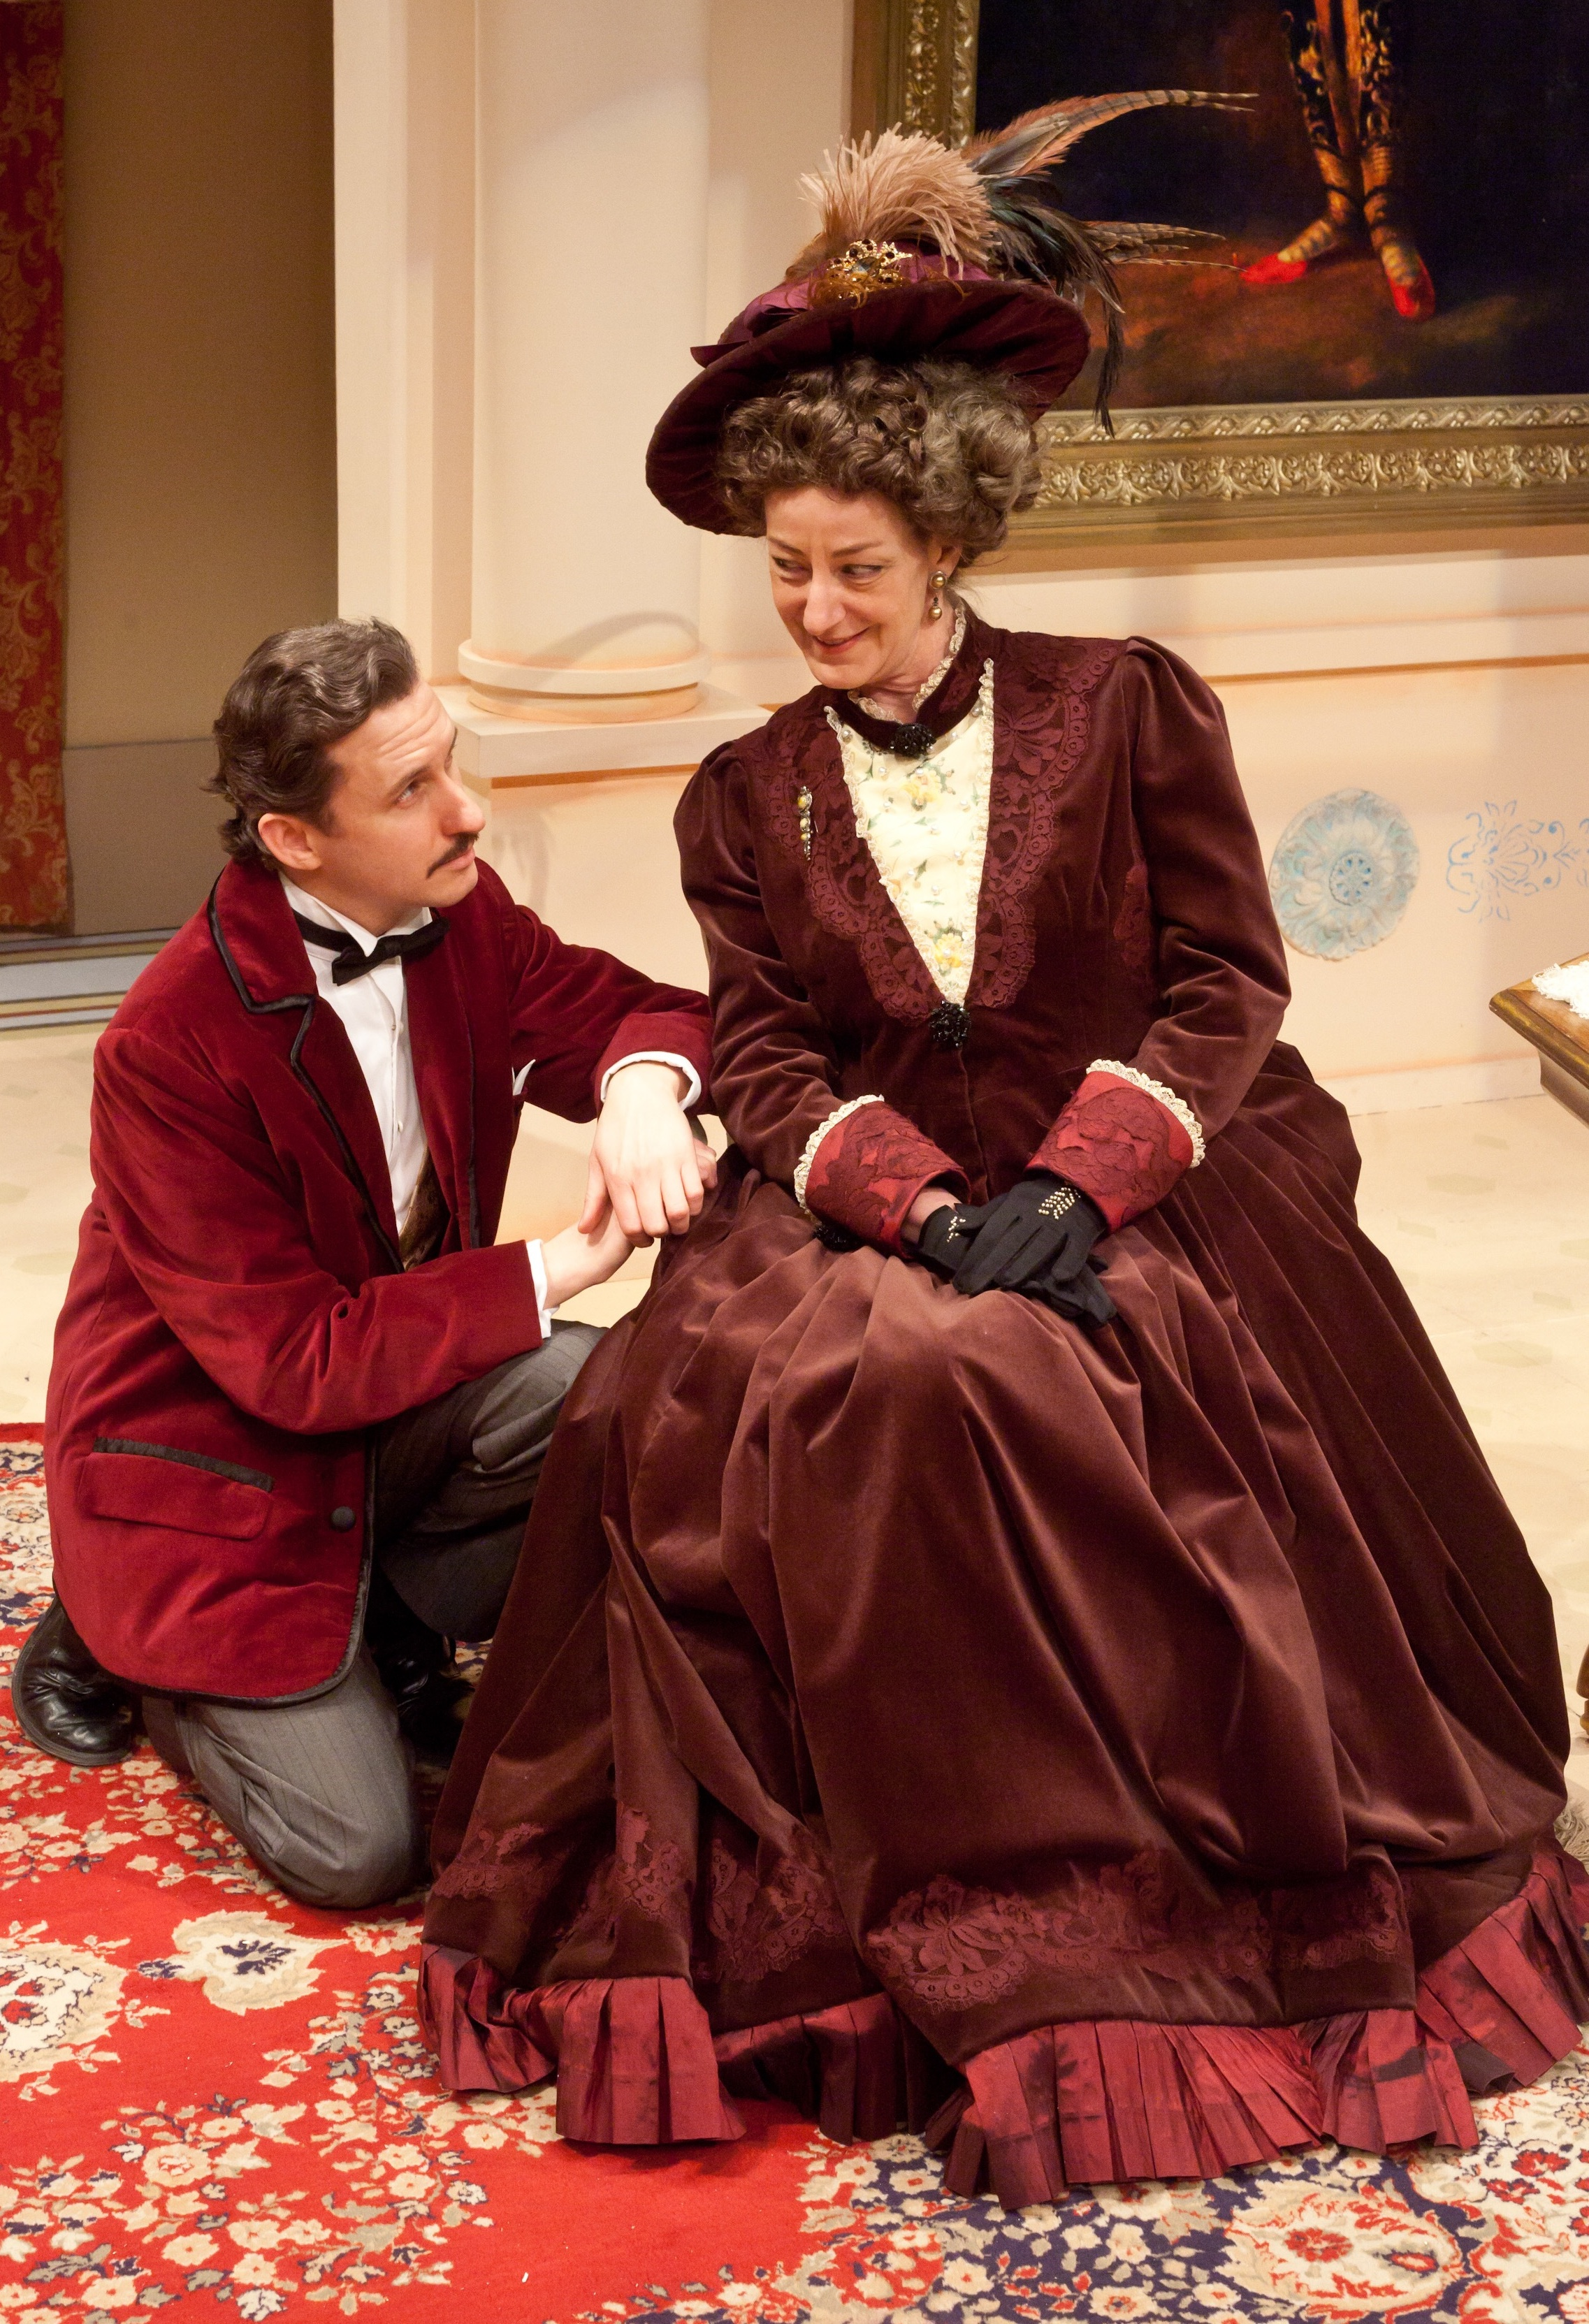 (Neptune Theatre,  The Importance of Bring Earnest  *Merritt Nomination for Outstanding Set/Costume Design. Set/Costume Sean Mulcahy | LX Kevin Fraser) photo by Timothy Richards